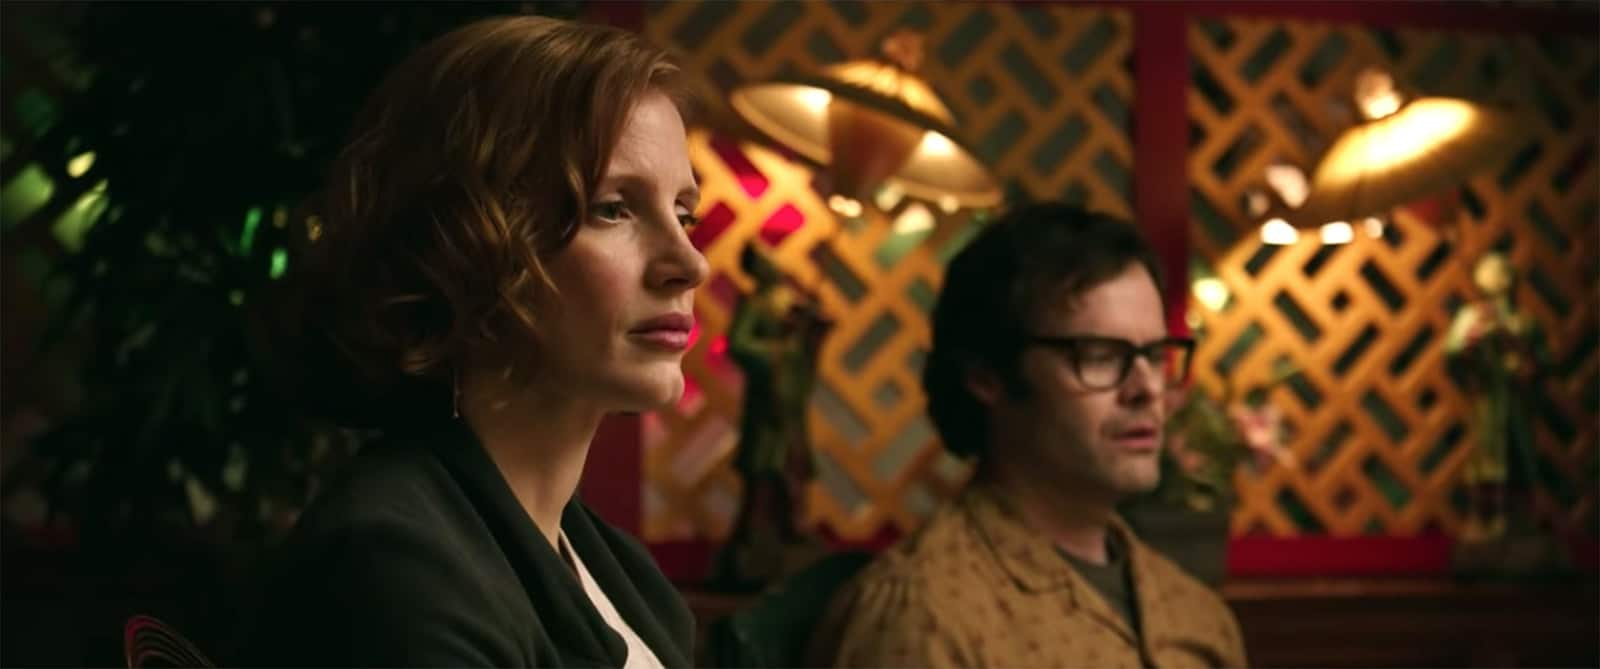 It Chapter Two 2 Movie Review - Bill Hader and Jessica Chastain - StudioBinder